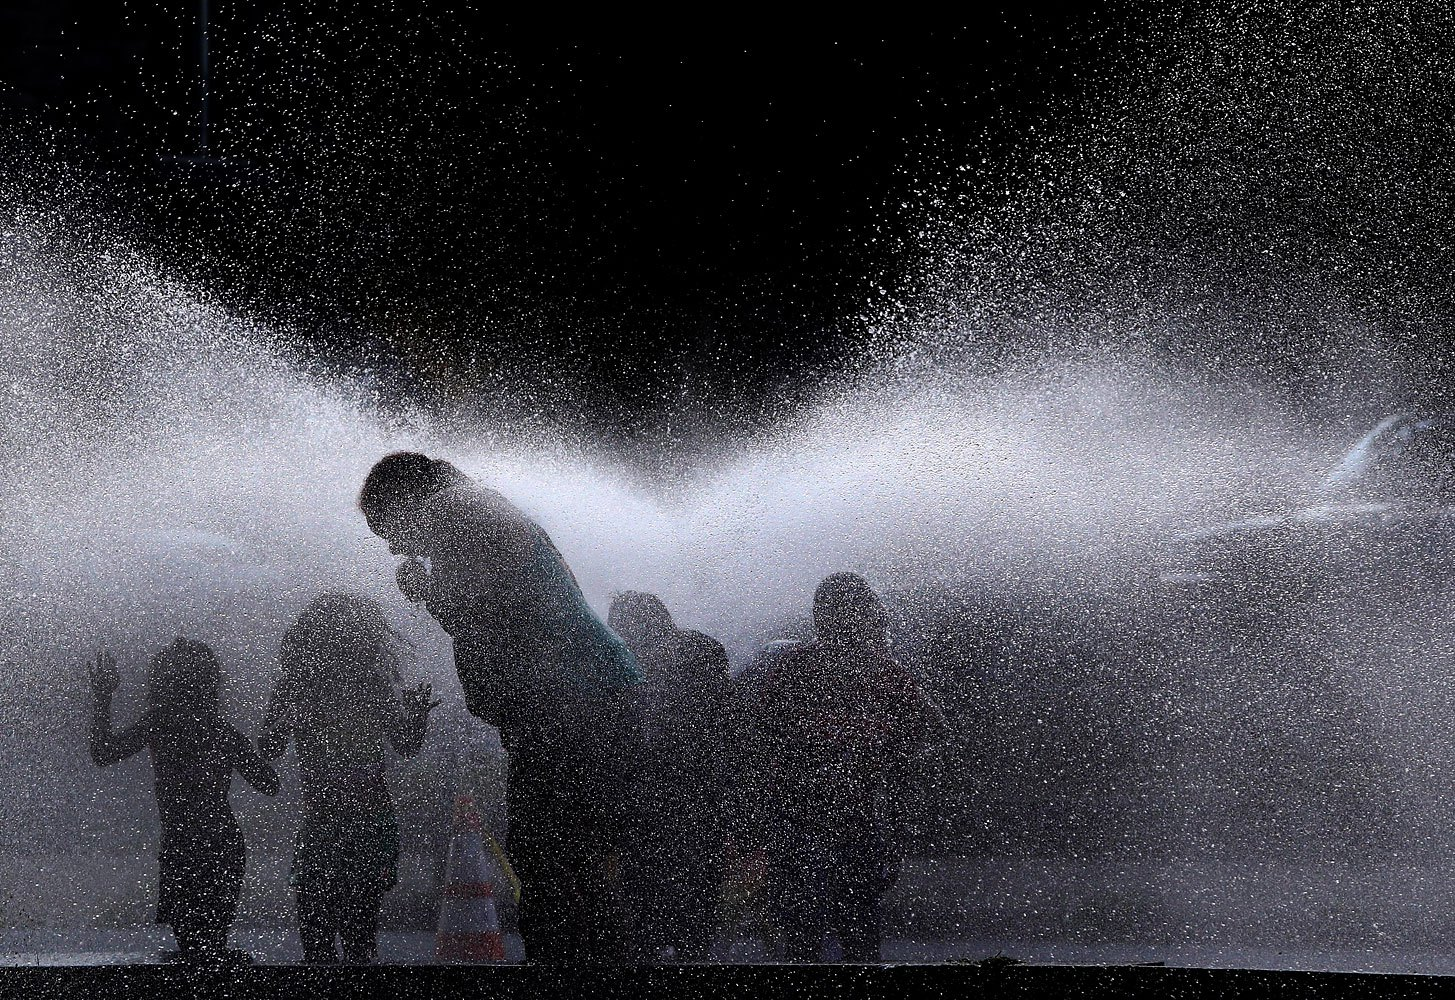 People cool off in the spray of an open hydrant on a hot evening in Lawrence, Mass., July 16, 2013. Americans across the northeast and midwest tried to keep their cool after several consecutive 90-degree days.